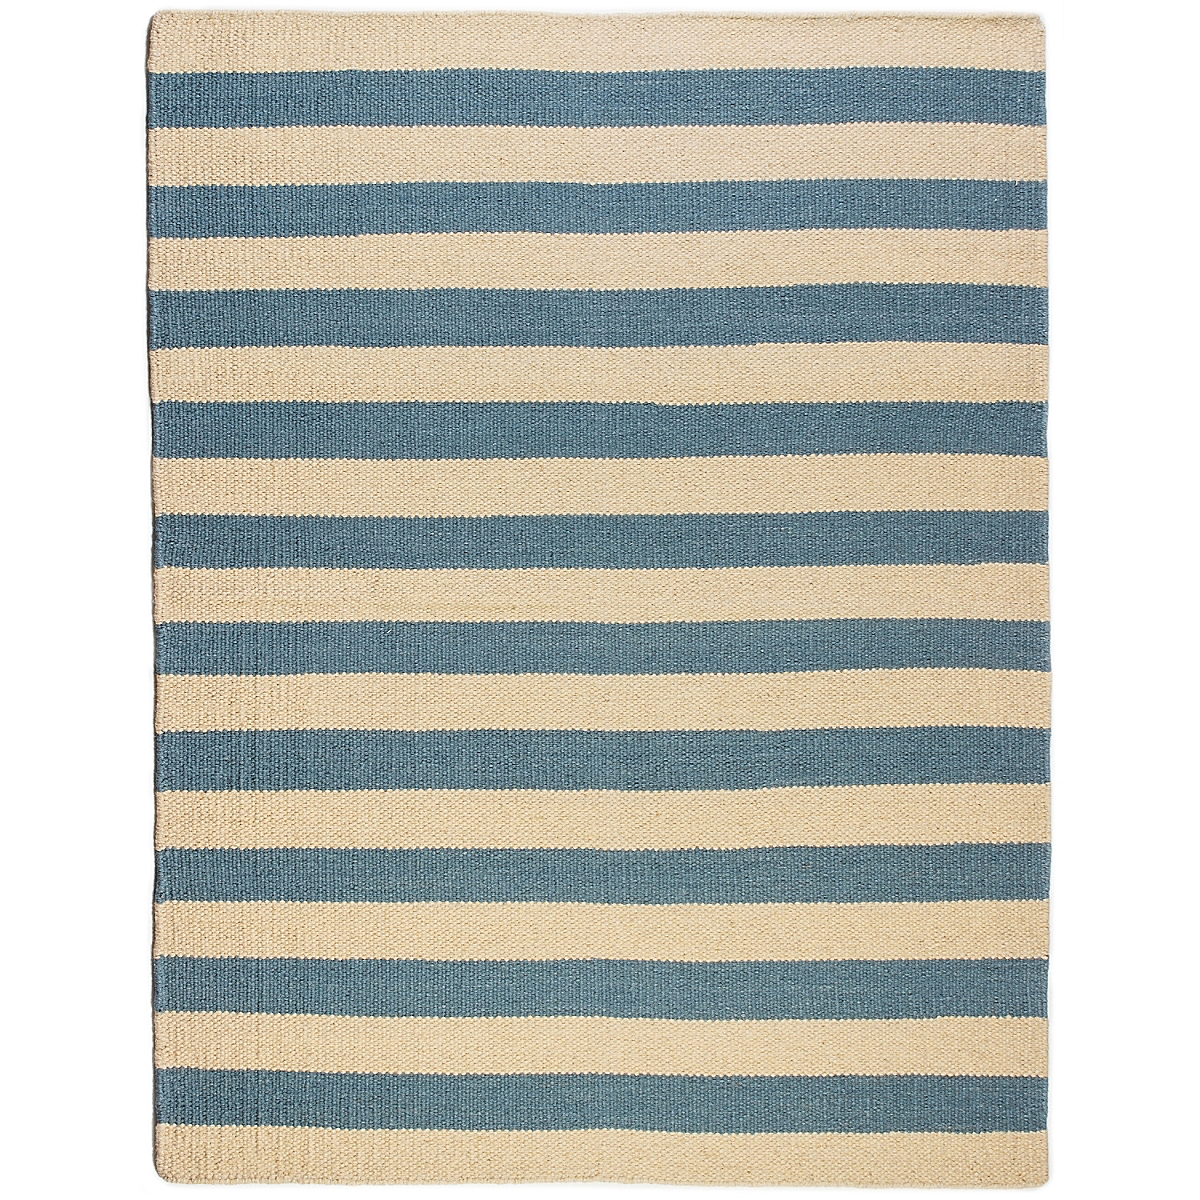 Cape Hatteras Wool Berber Striped Rug